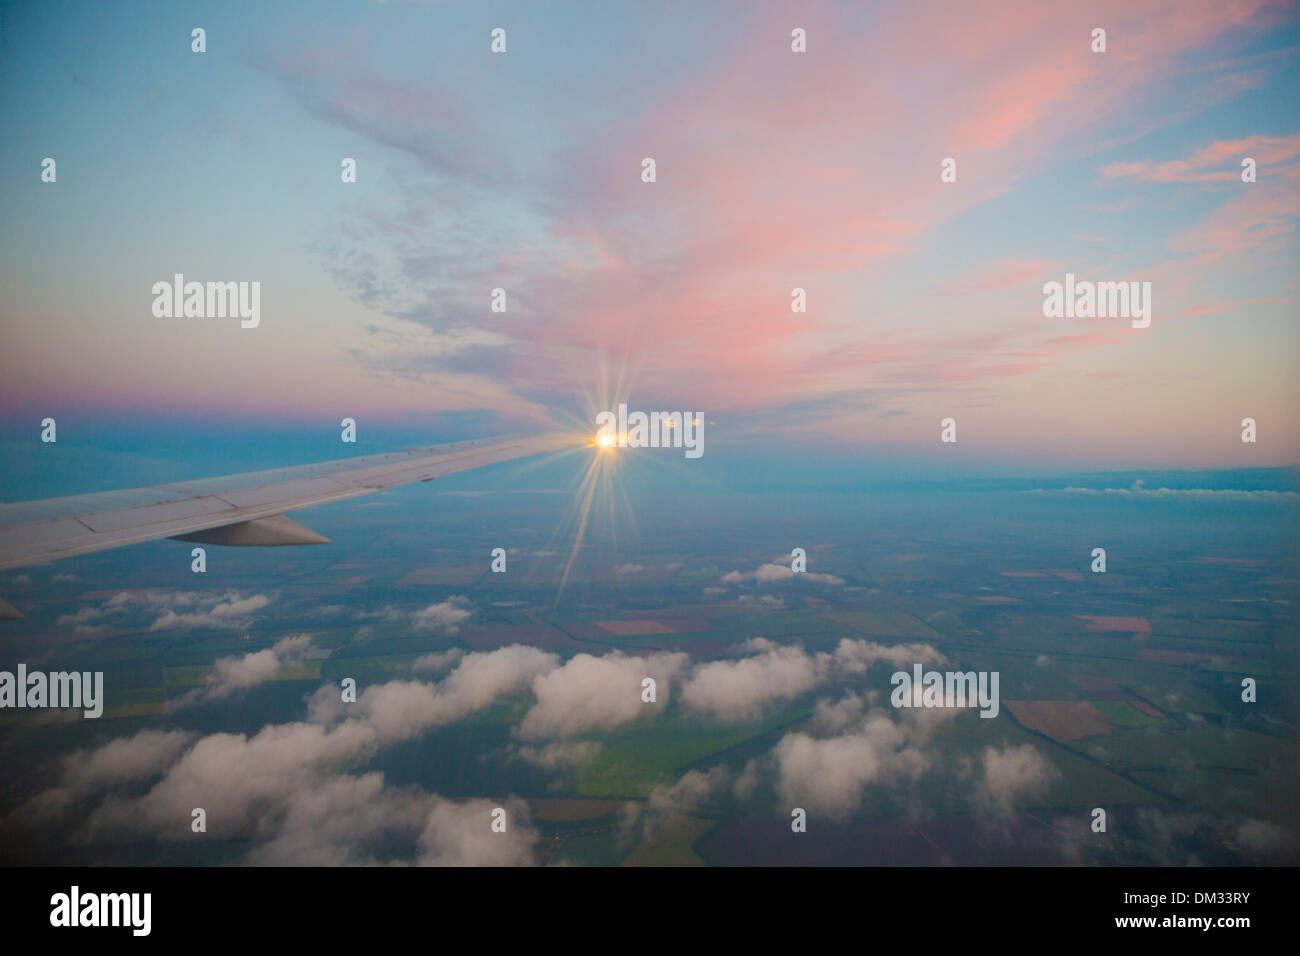 airplane, cloud, clouds, flight, light, sunset, travel, trip, holiday, fly, wing - Stock Image